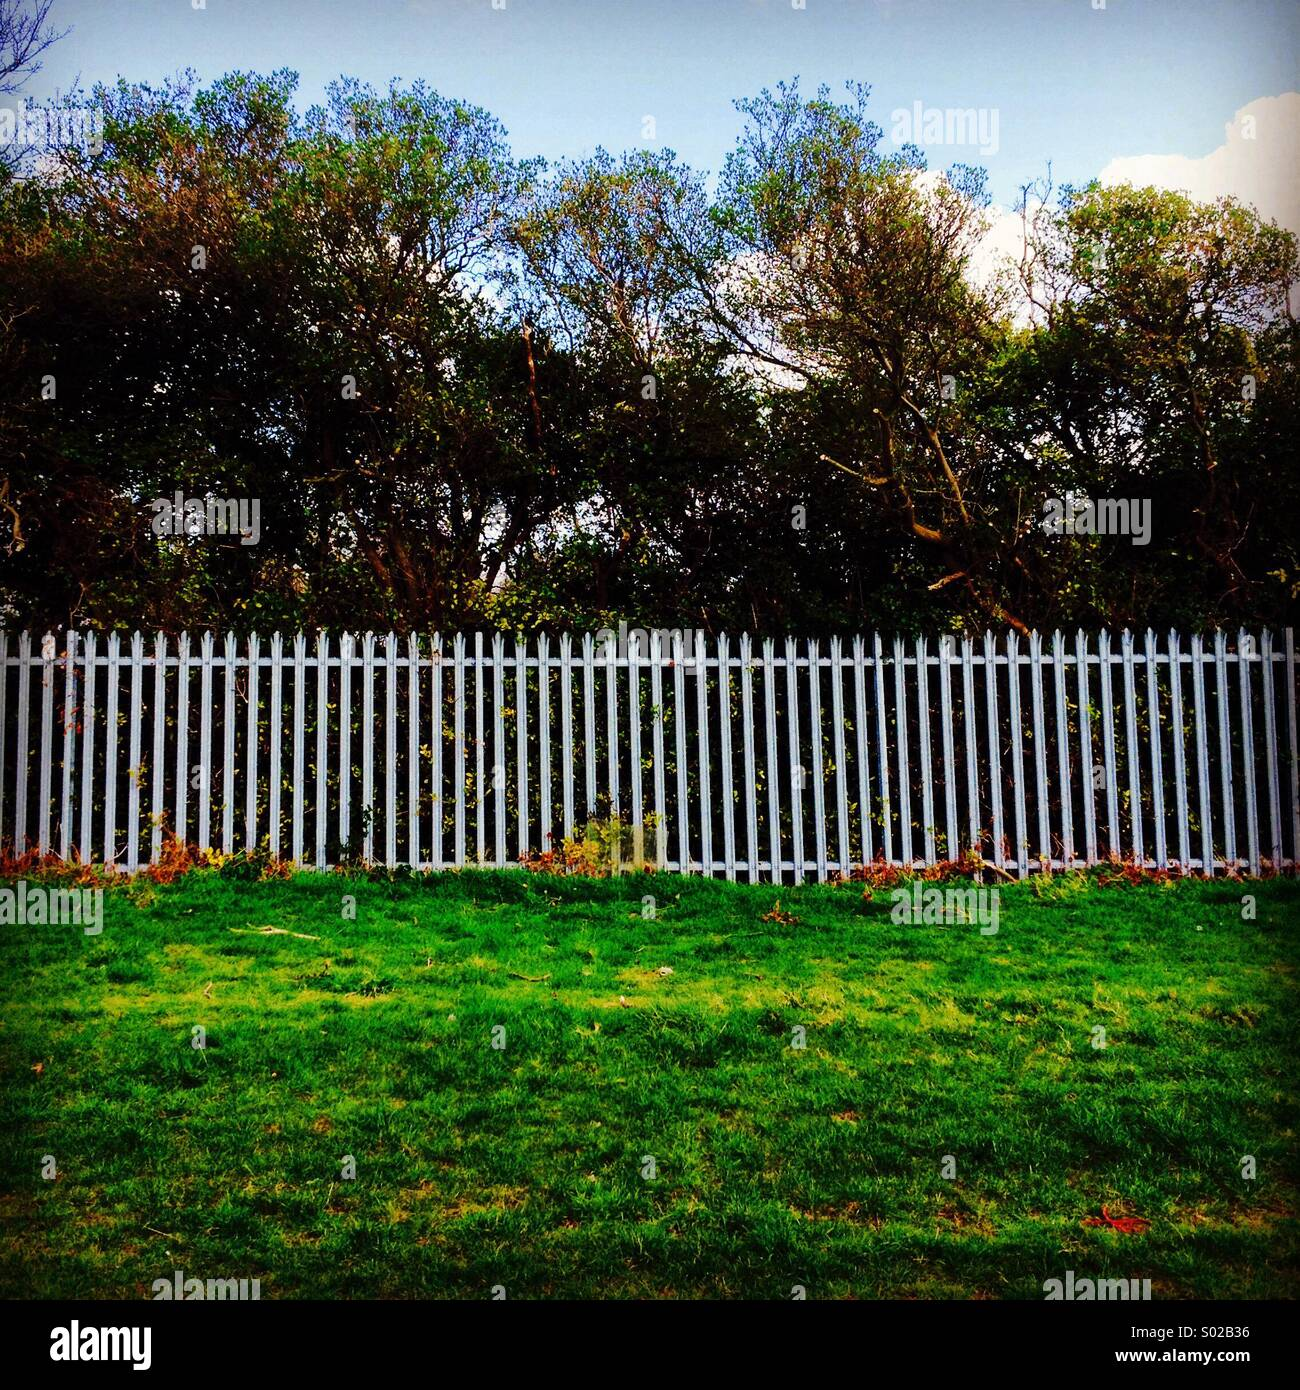 White fence and trees - Stock Image